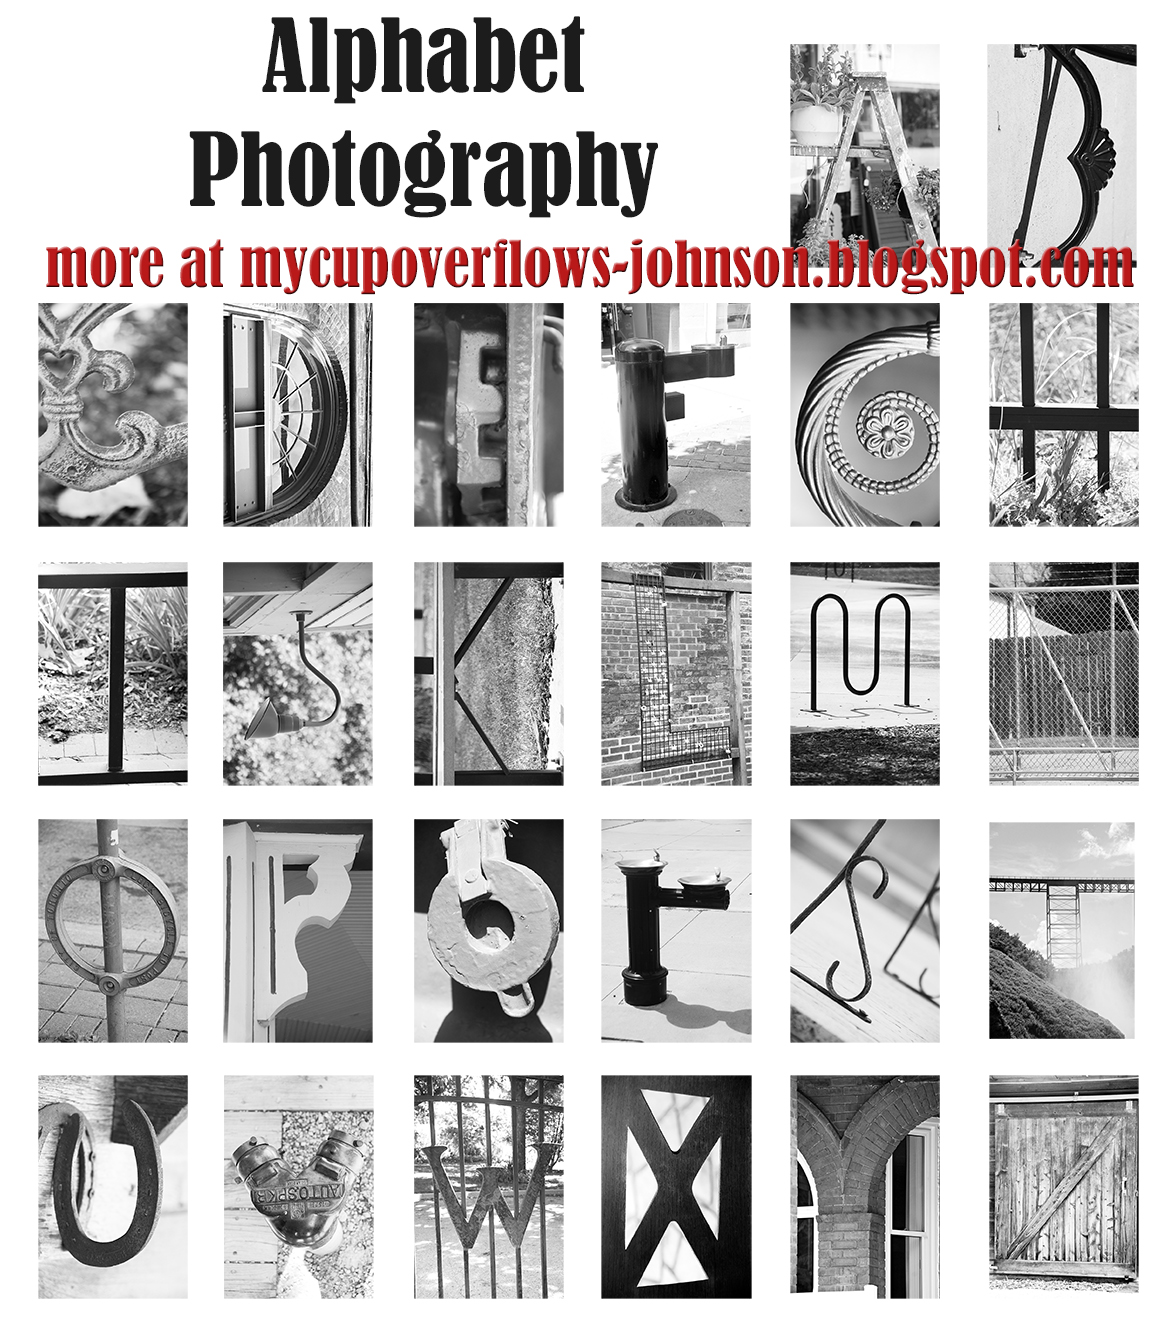 My Cup Overflows: Alphabet Photography